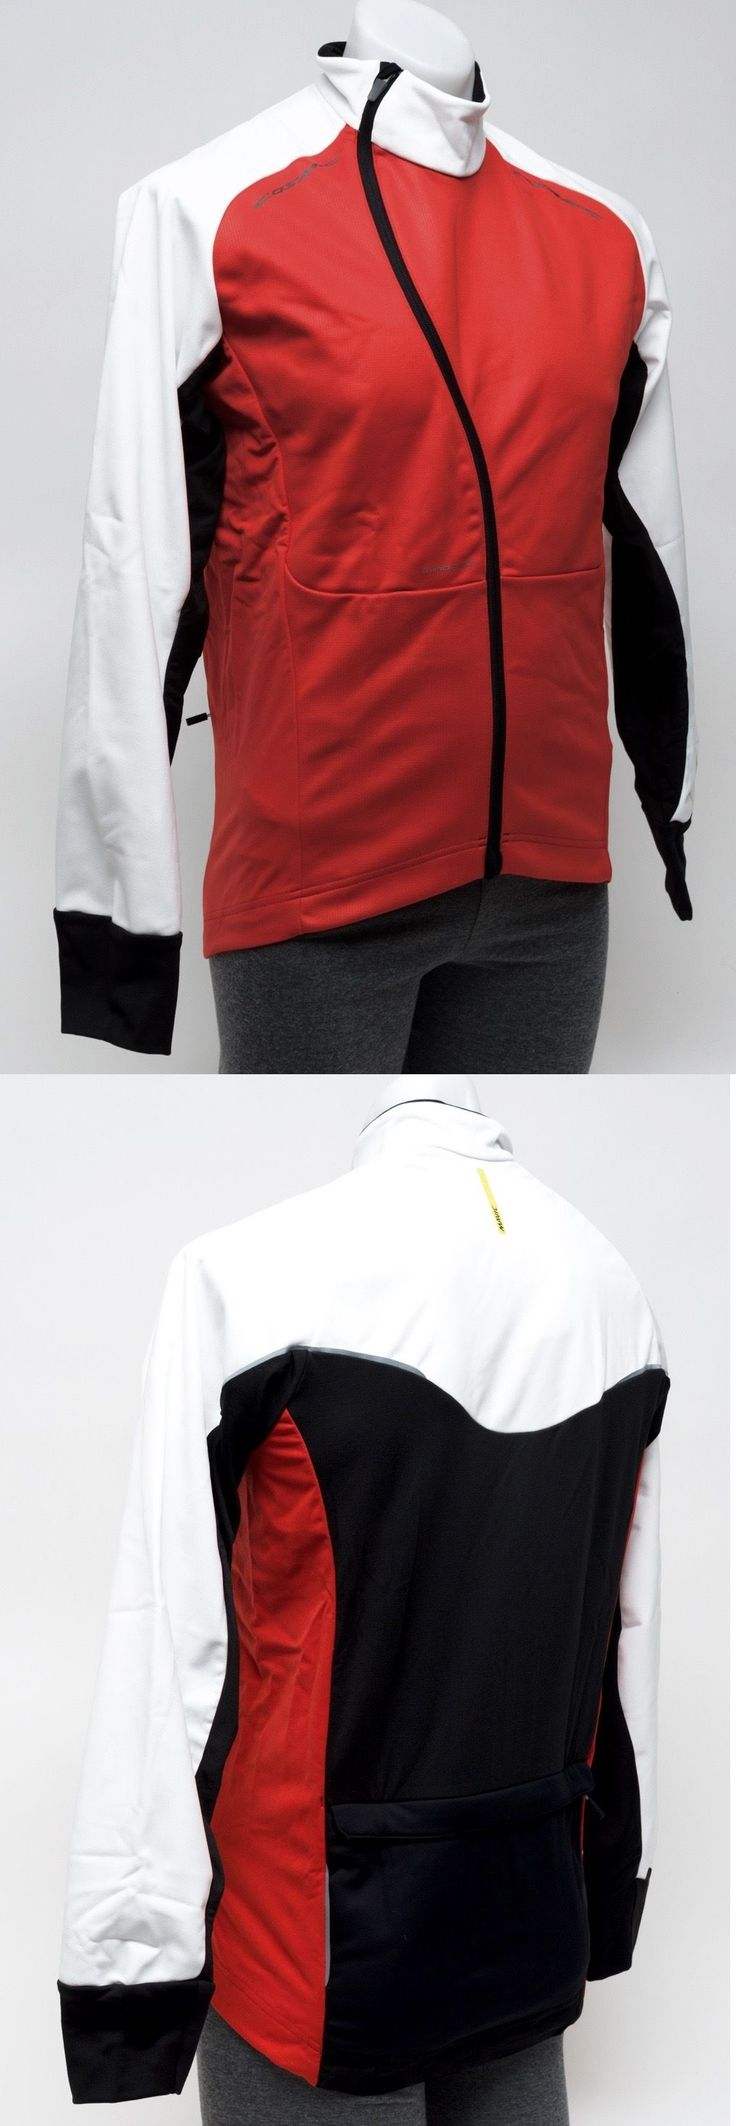 Jackets 36124: Mavic Cosmic Pro Men Wind Jacket Thermal Road Bike Cycling Medium Red White New -> BUY IT NOW ONLY: $34.95 on eBay!